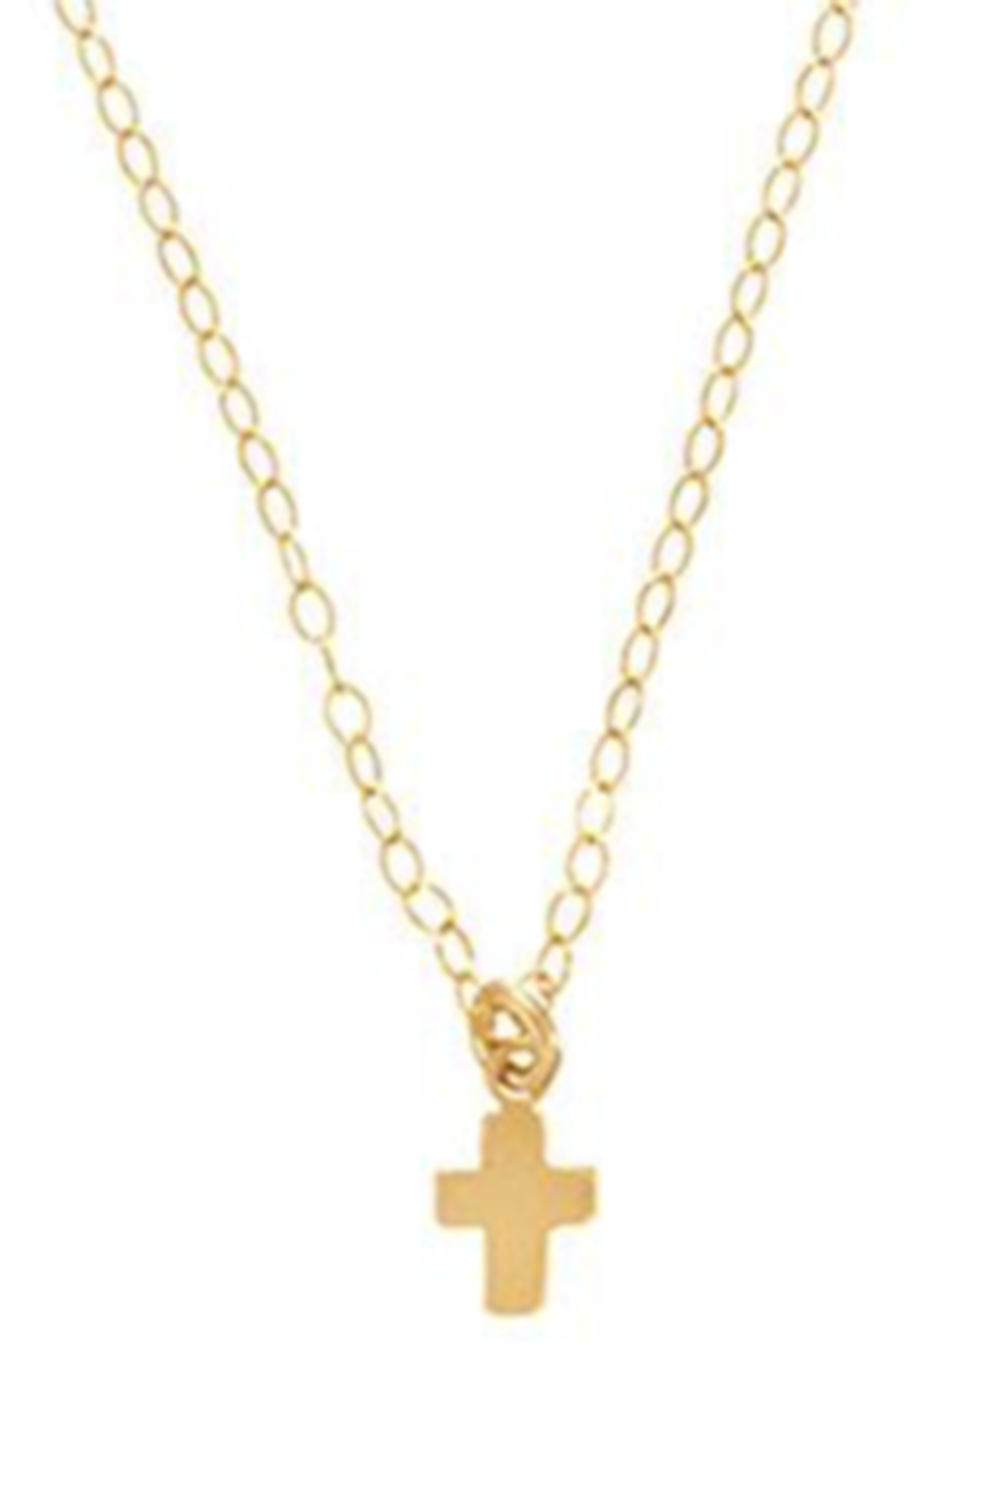 EN Tiny Believe Cross Necklace - Gold